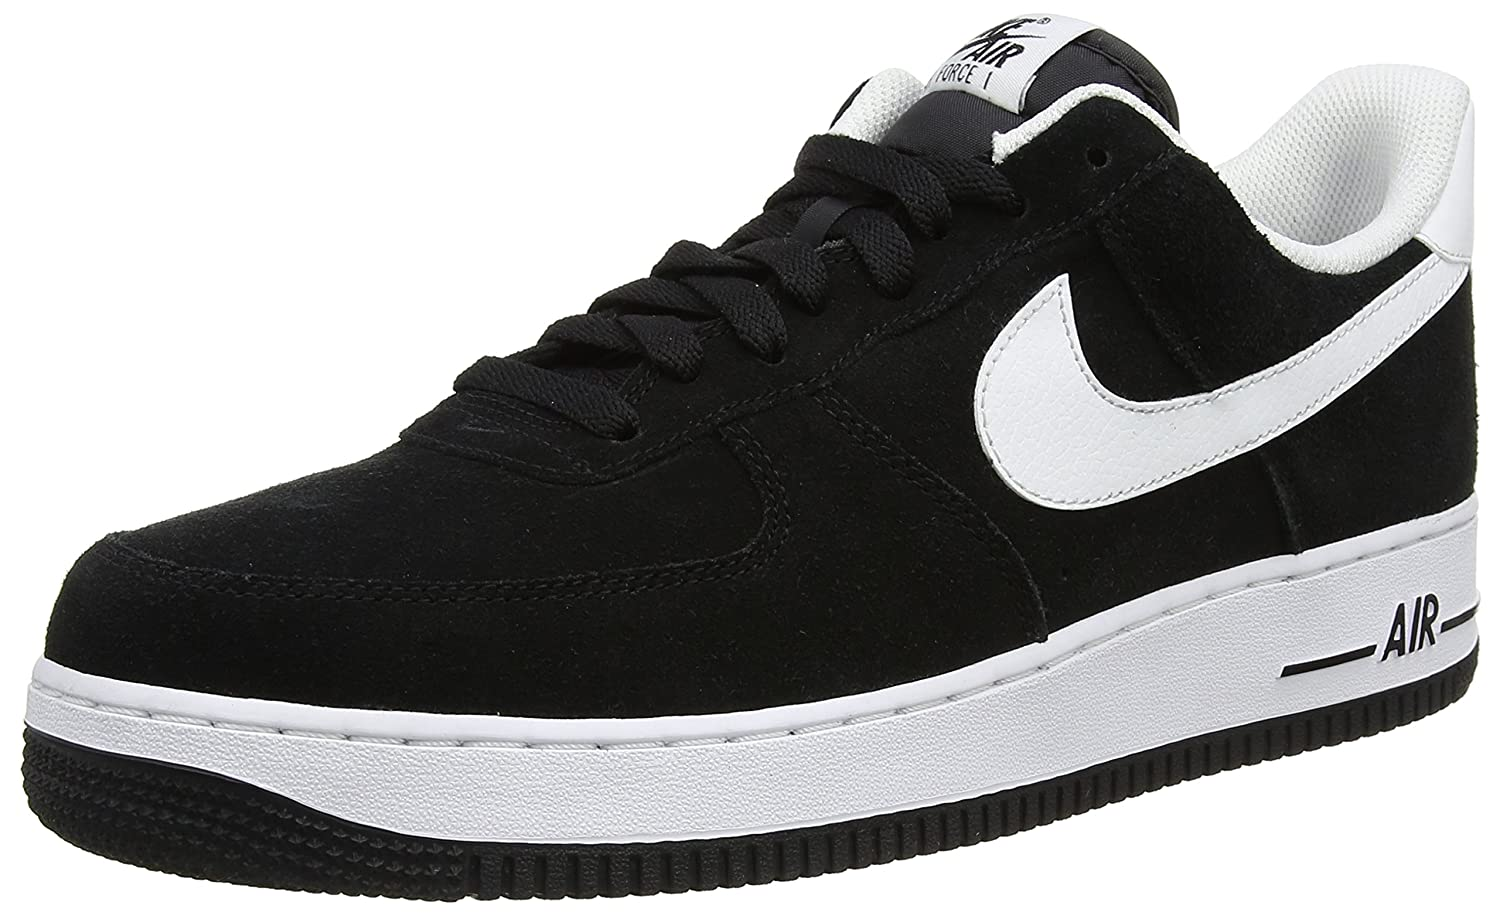 197d1c9562e6c Amazon.com | Nike Men's Air Force 1 Low Sneaker | Basketball